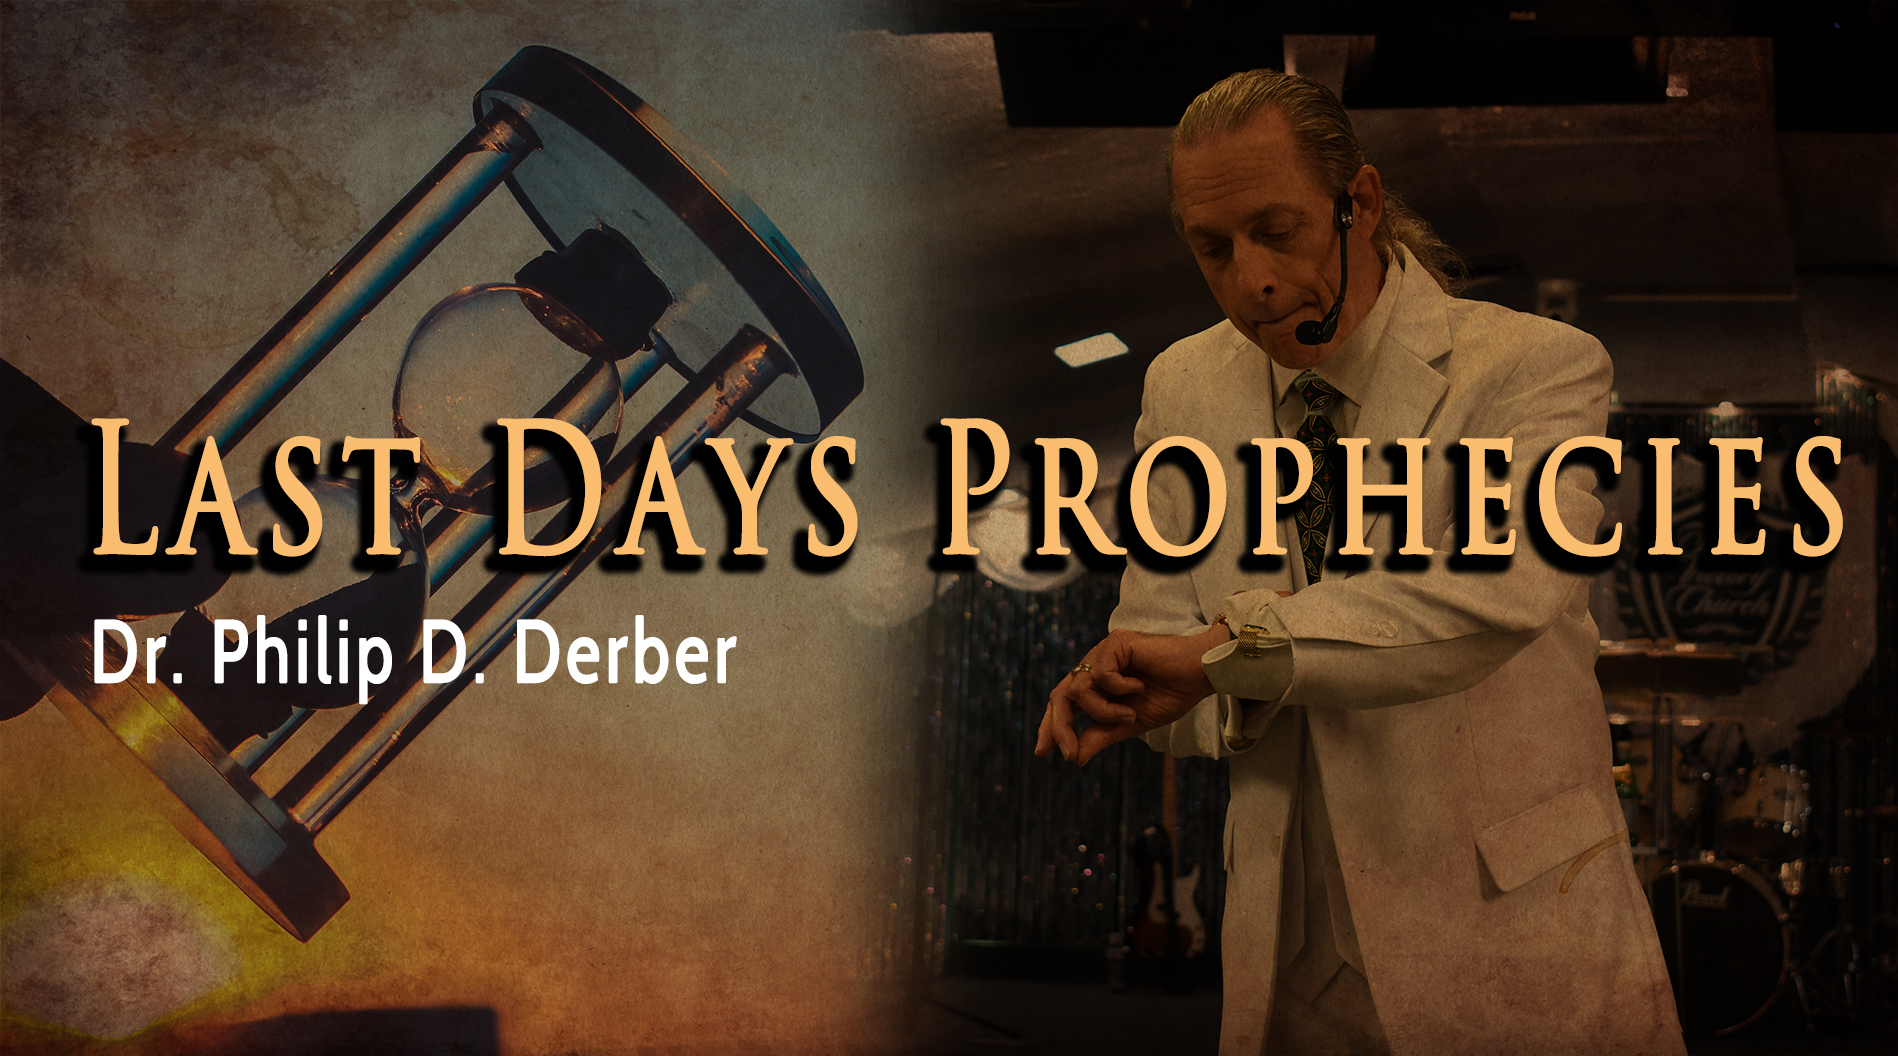 Last Days Prophecies